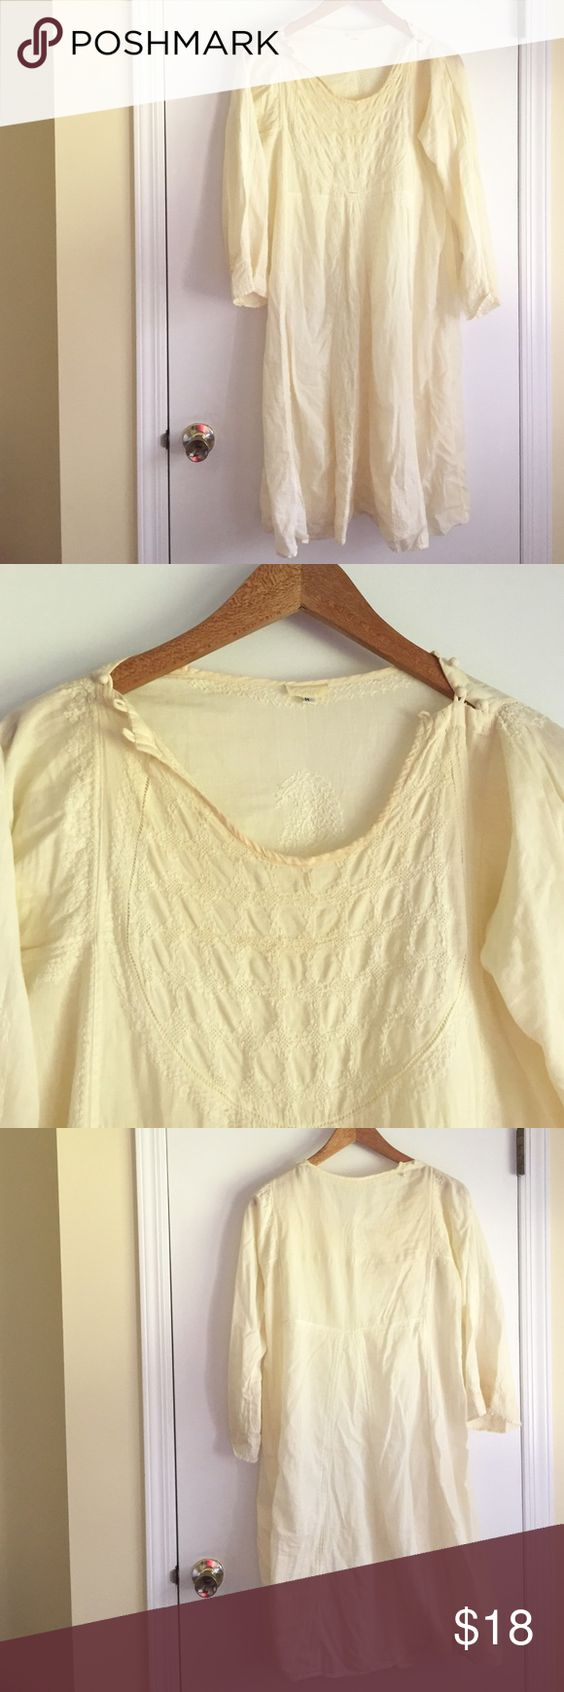 FLASH SALEBoho dress/cover up Boho dress that could be worn as a coverup because it's very light, very pretty and in good condition. Creamish yellow in color. Not for someone who is big busted! OFFERS WELCOME Nimbu Dresses Midi